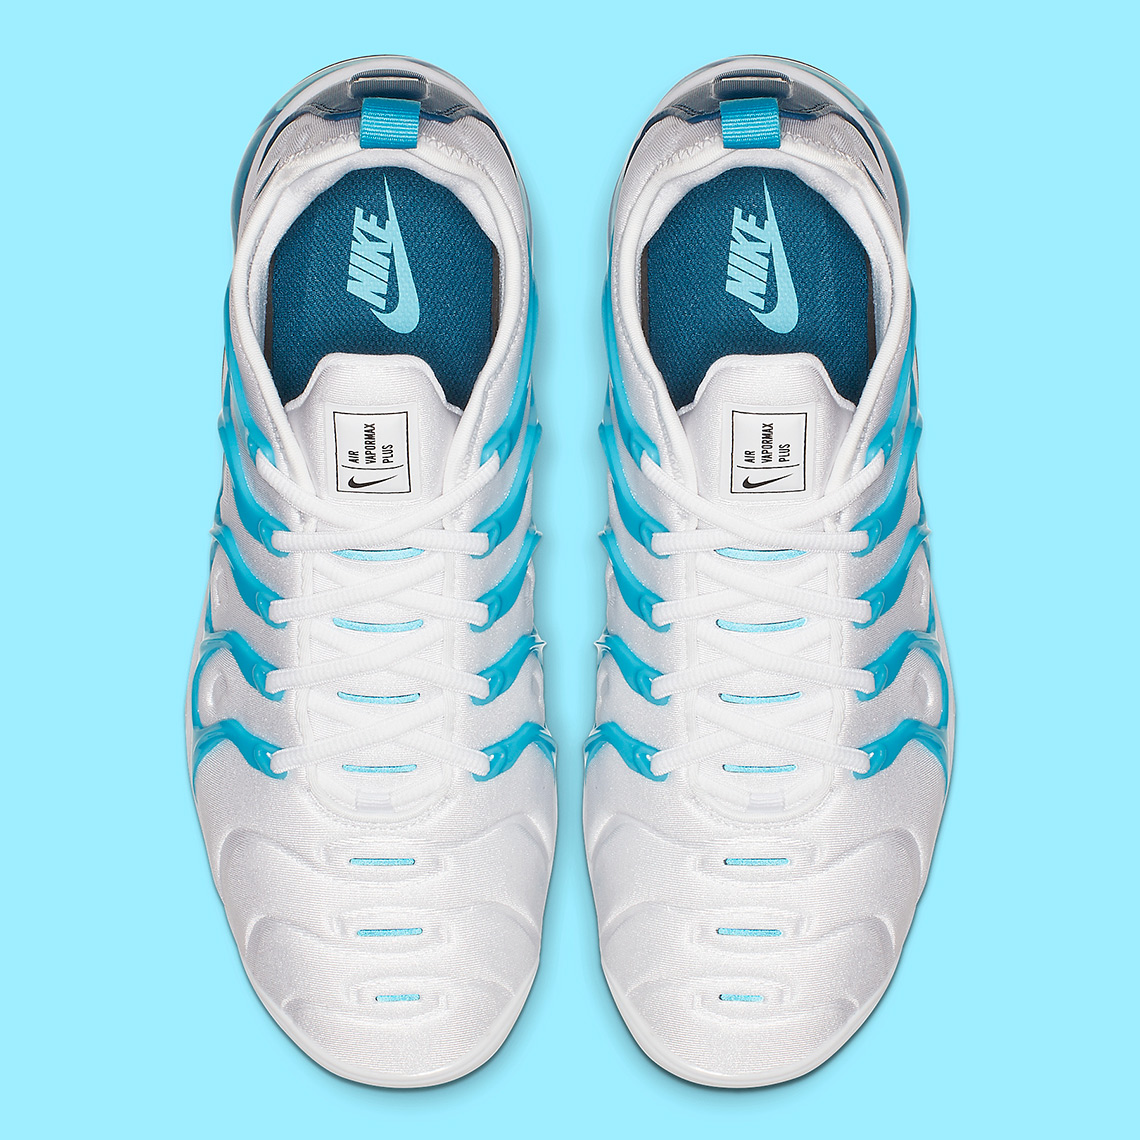 """official photos 70fc6 f84e0 Nike Vapormax Plus Adds A """"Blue Force"""" Exterior Cage - Welcome"""